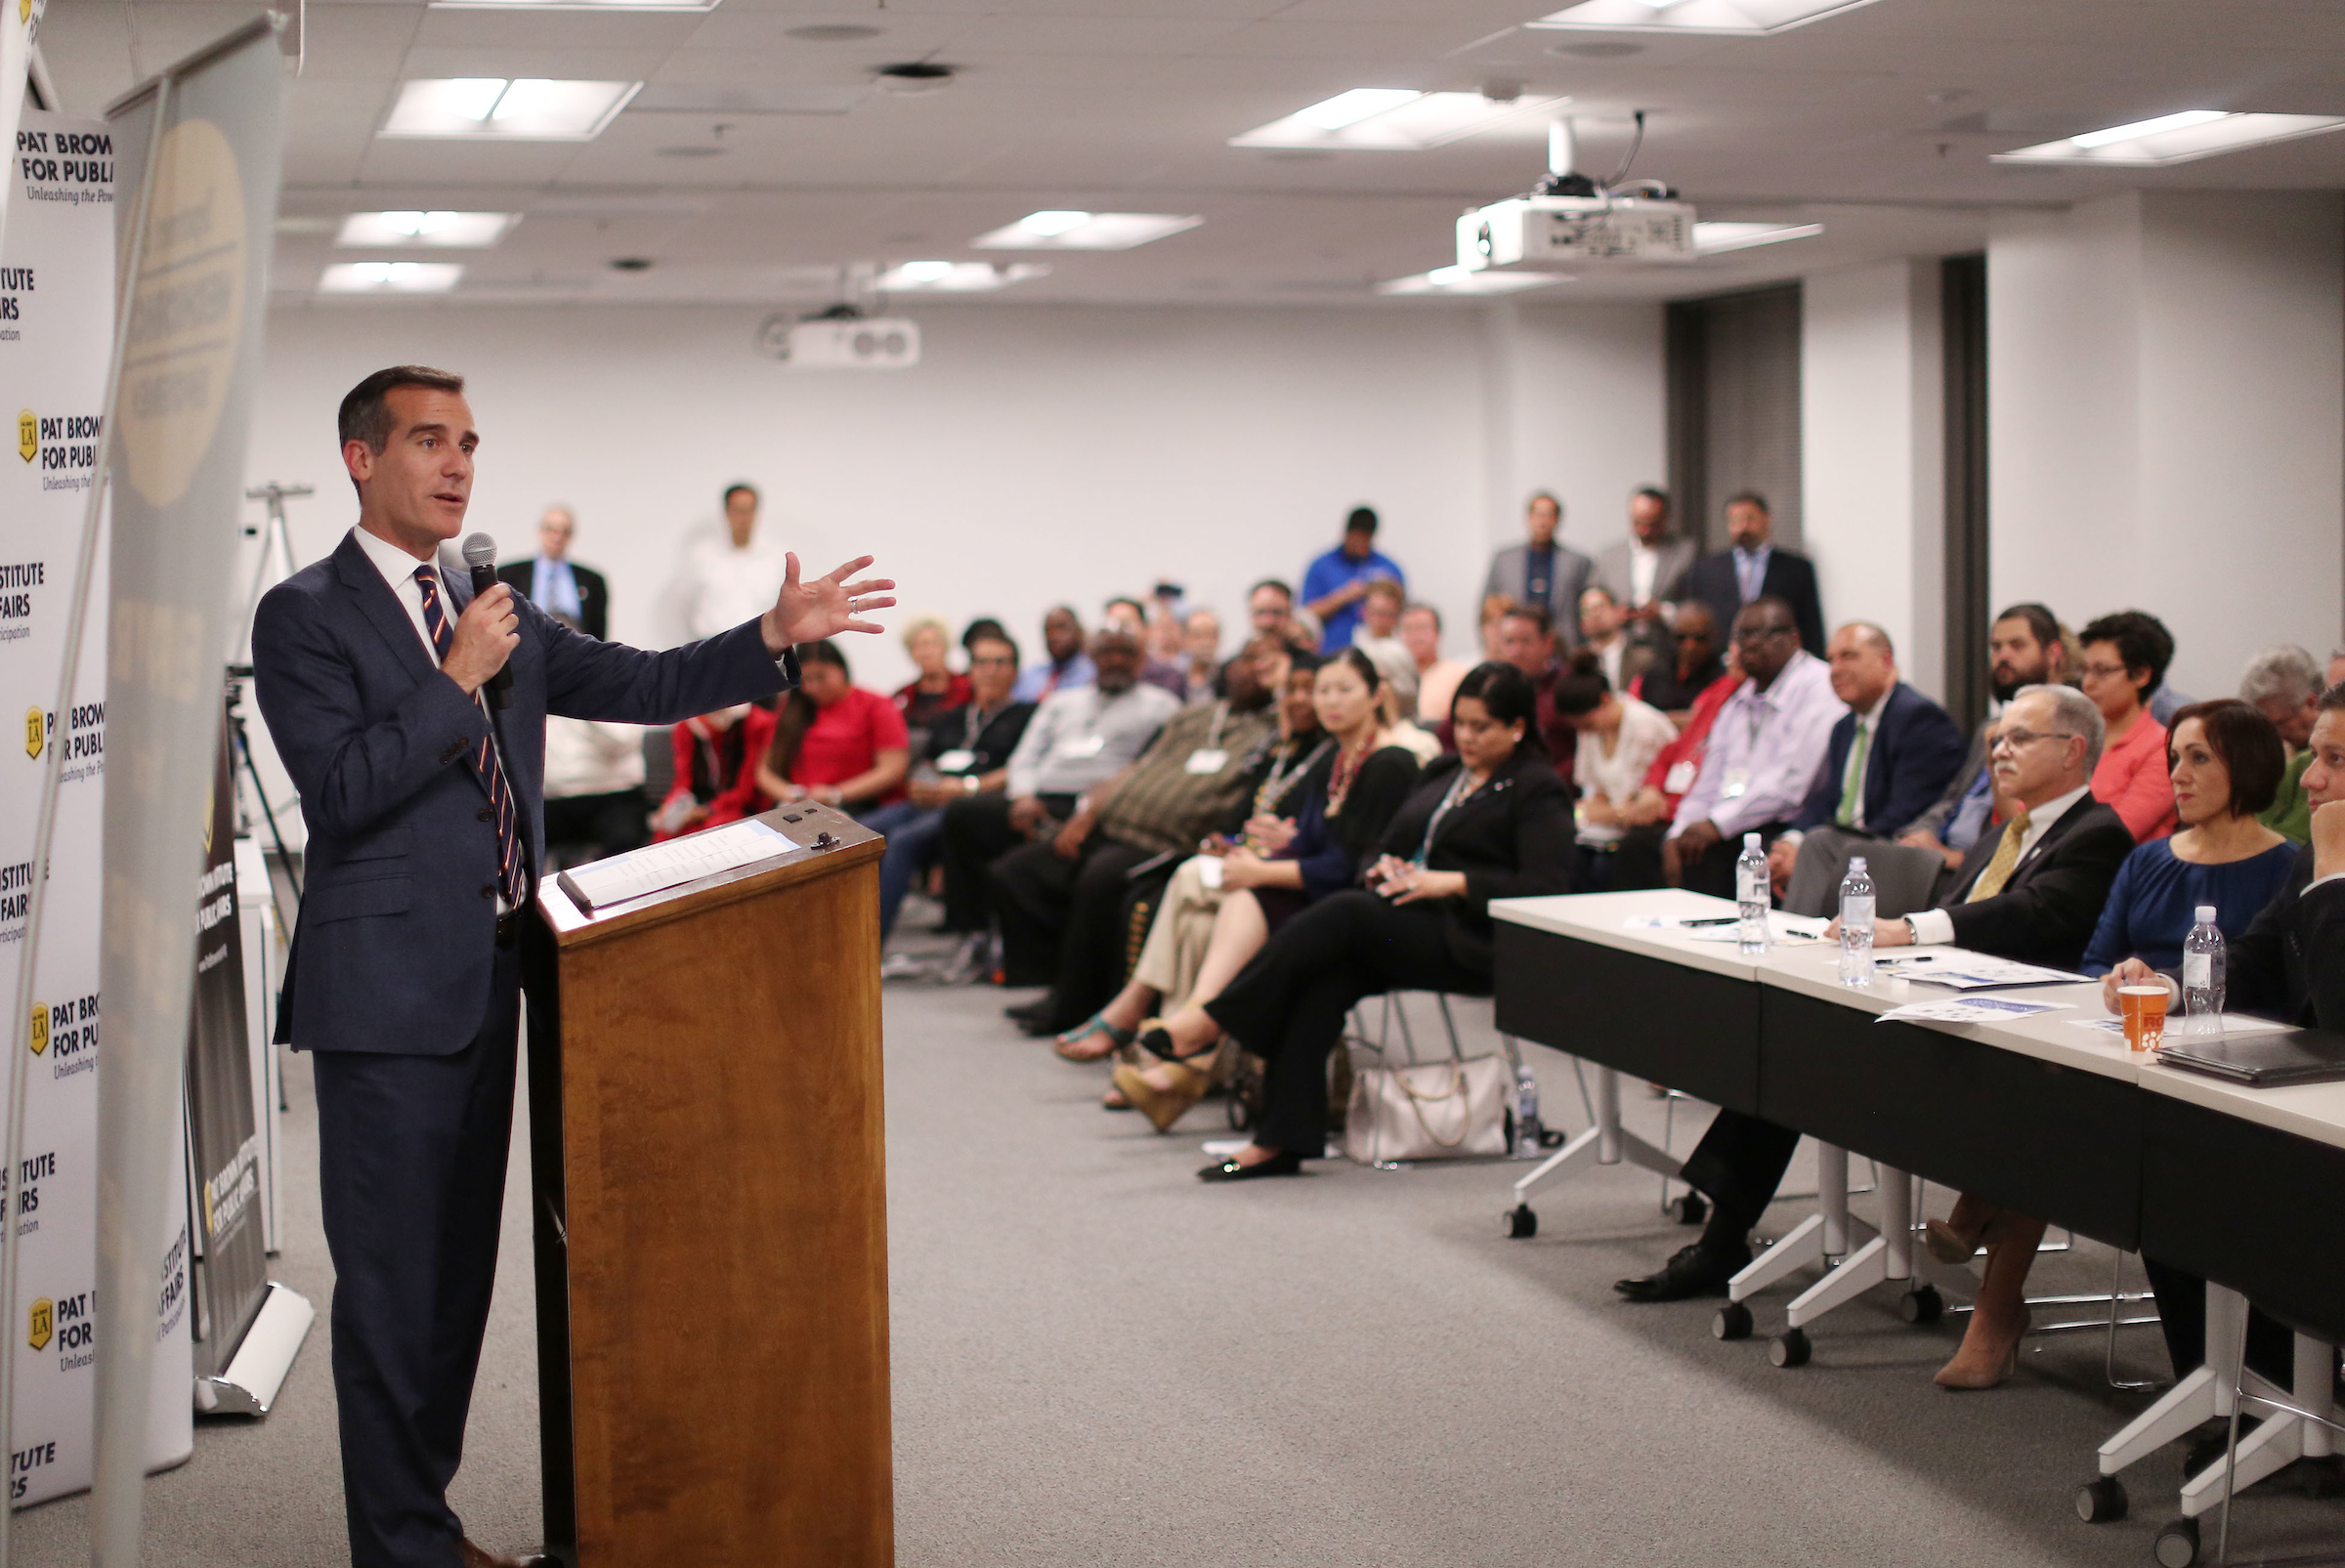 Mayor Eric Garcetti speaks with a microphone to a room full of participants of Civic University, a program organized by the Pat Brown Institute for Public Affairs at Cal State LA.